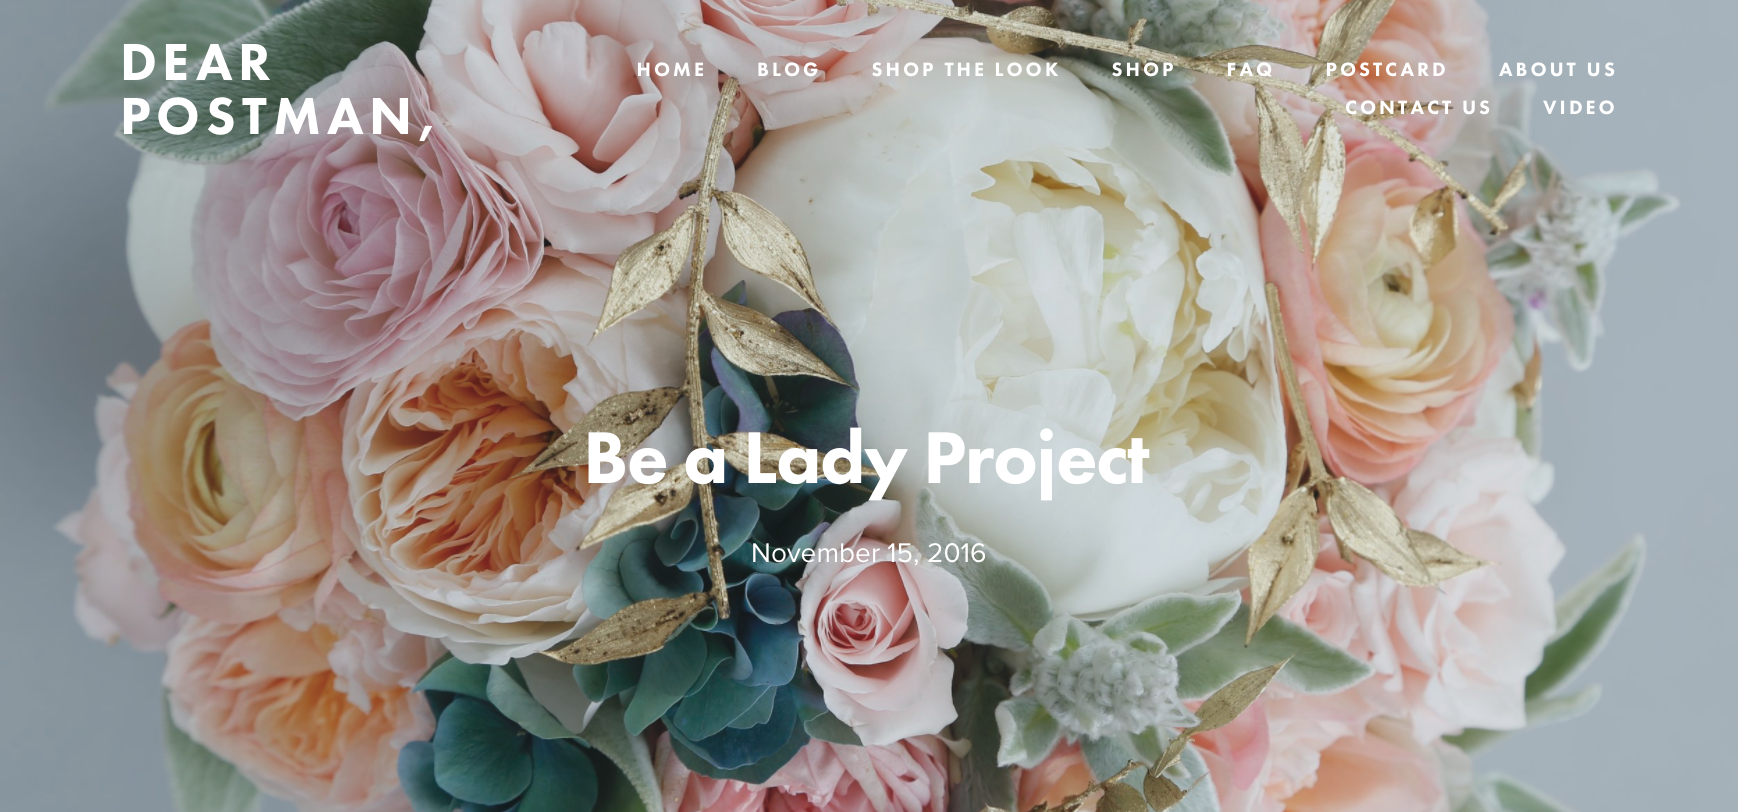 Be a Lady Project